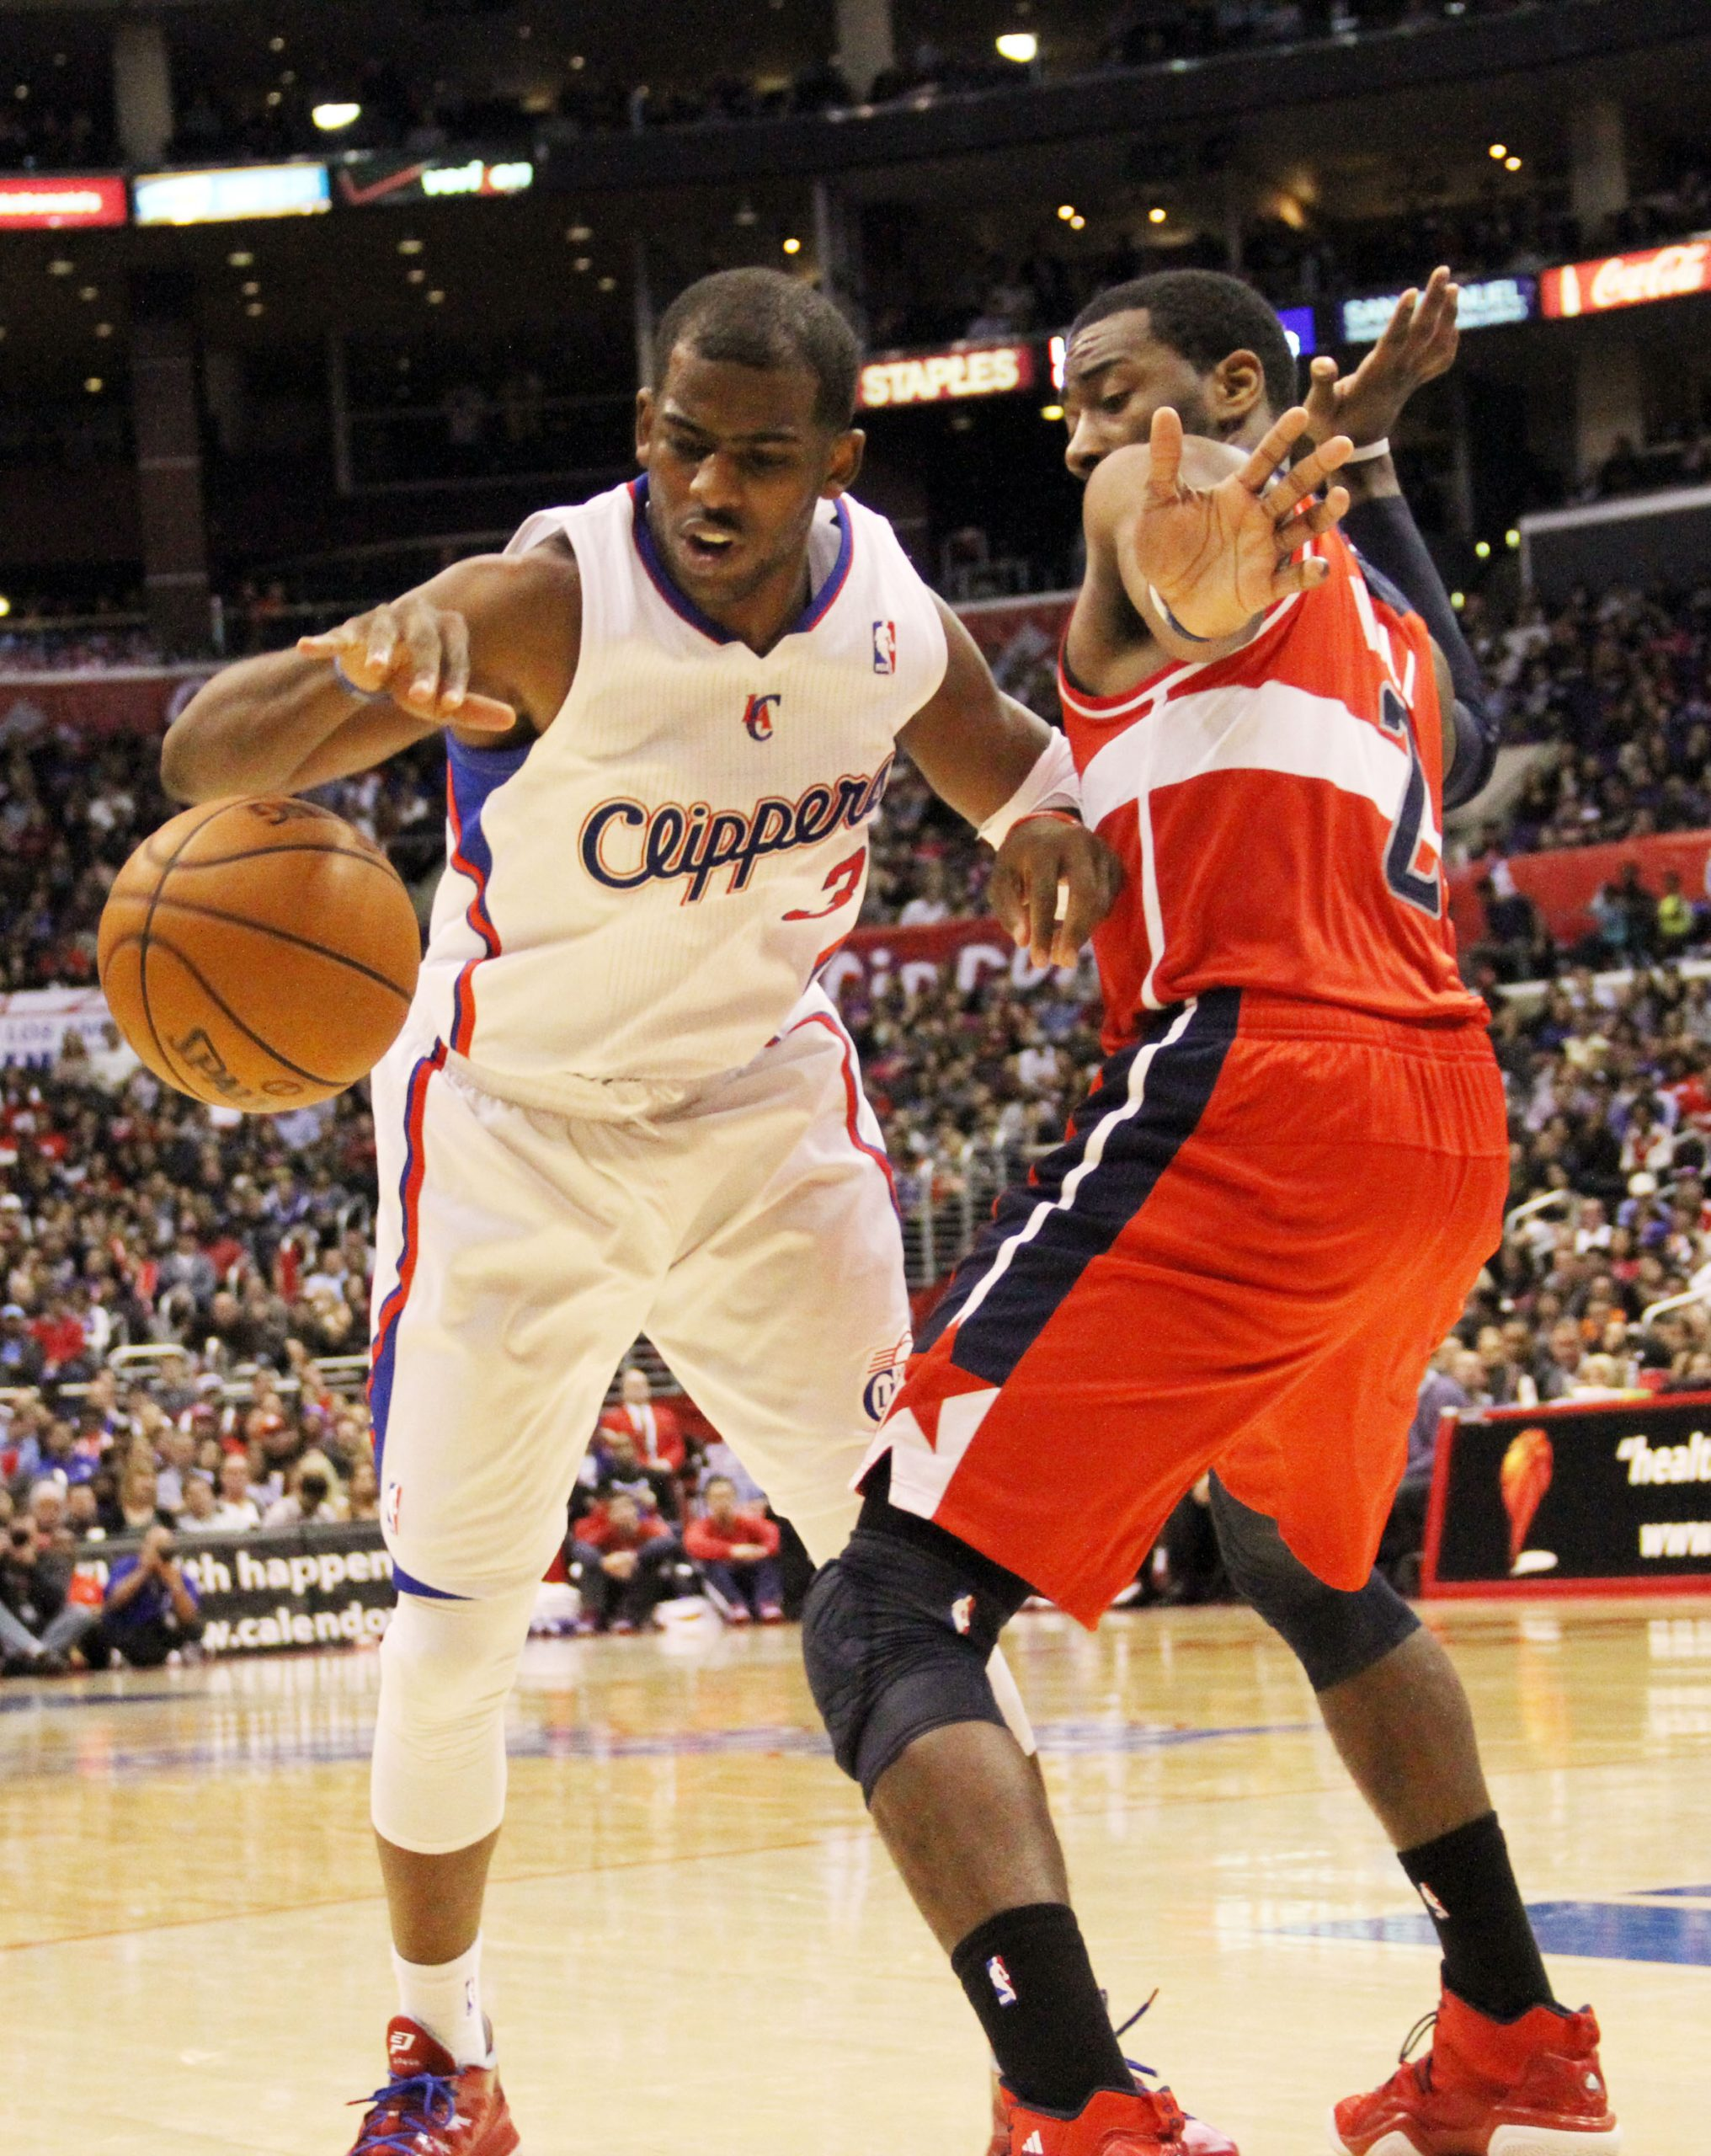 Los Angeles-The Clippers ran into a road bump without their starting point guard Chris Paul, losing two out of the...